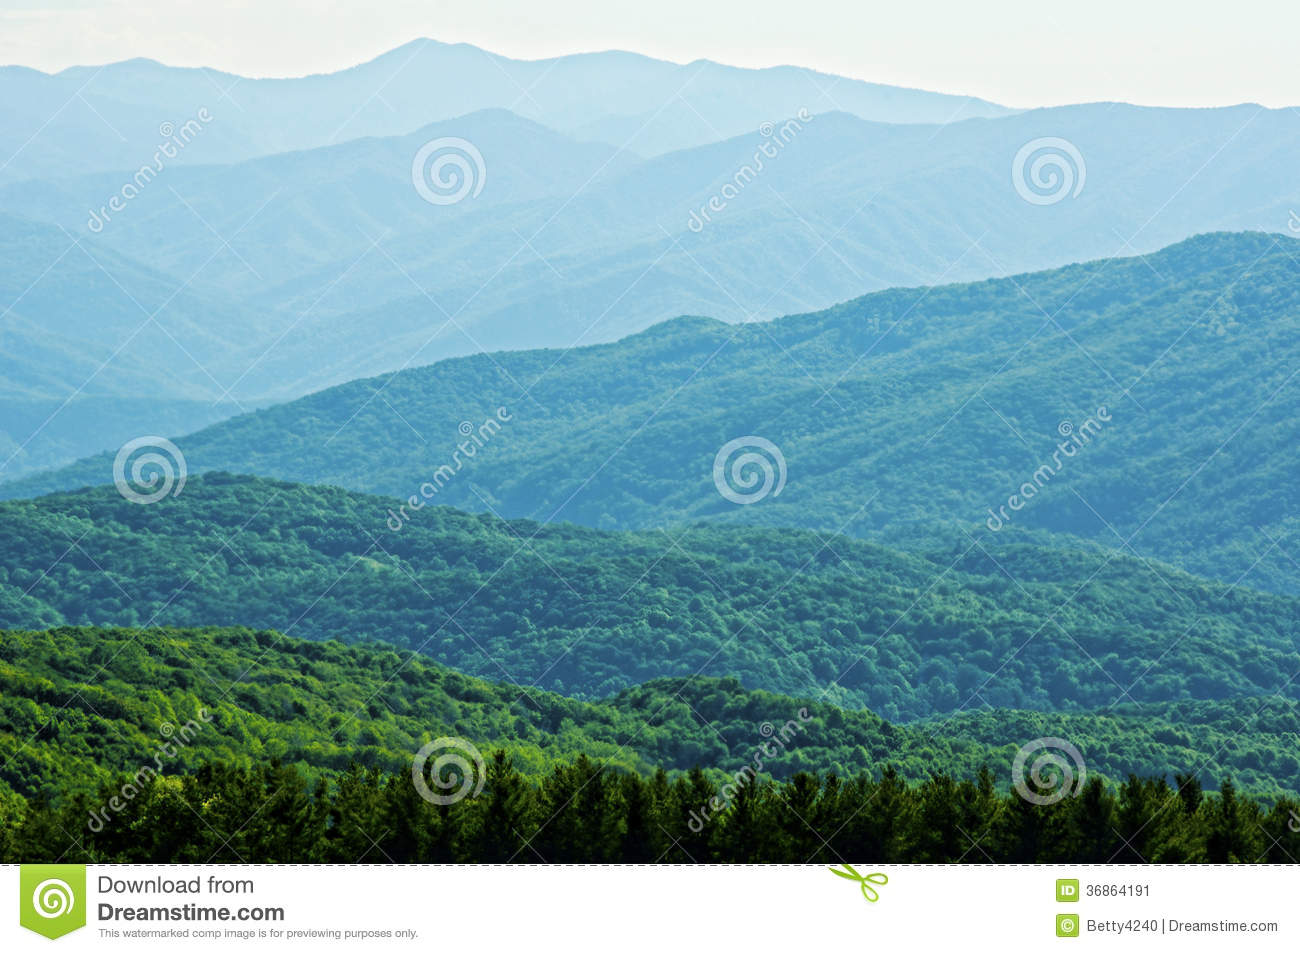 Layers of blue mountains in the Smokies.